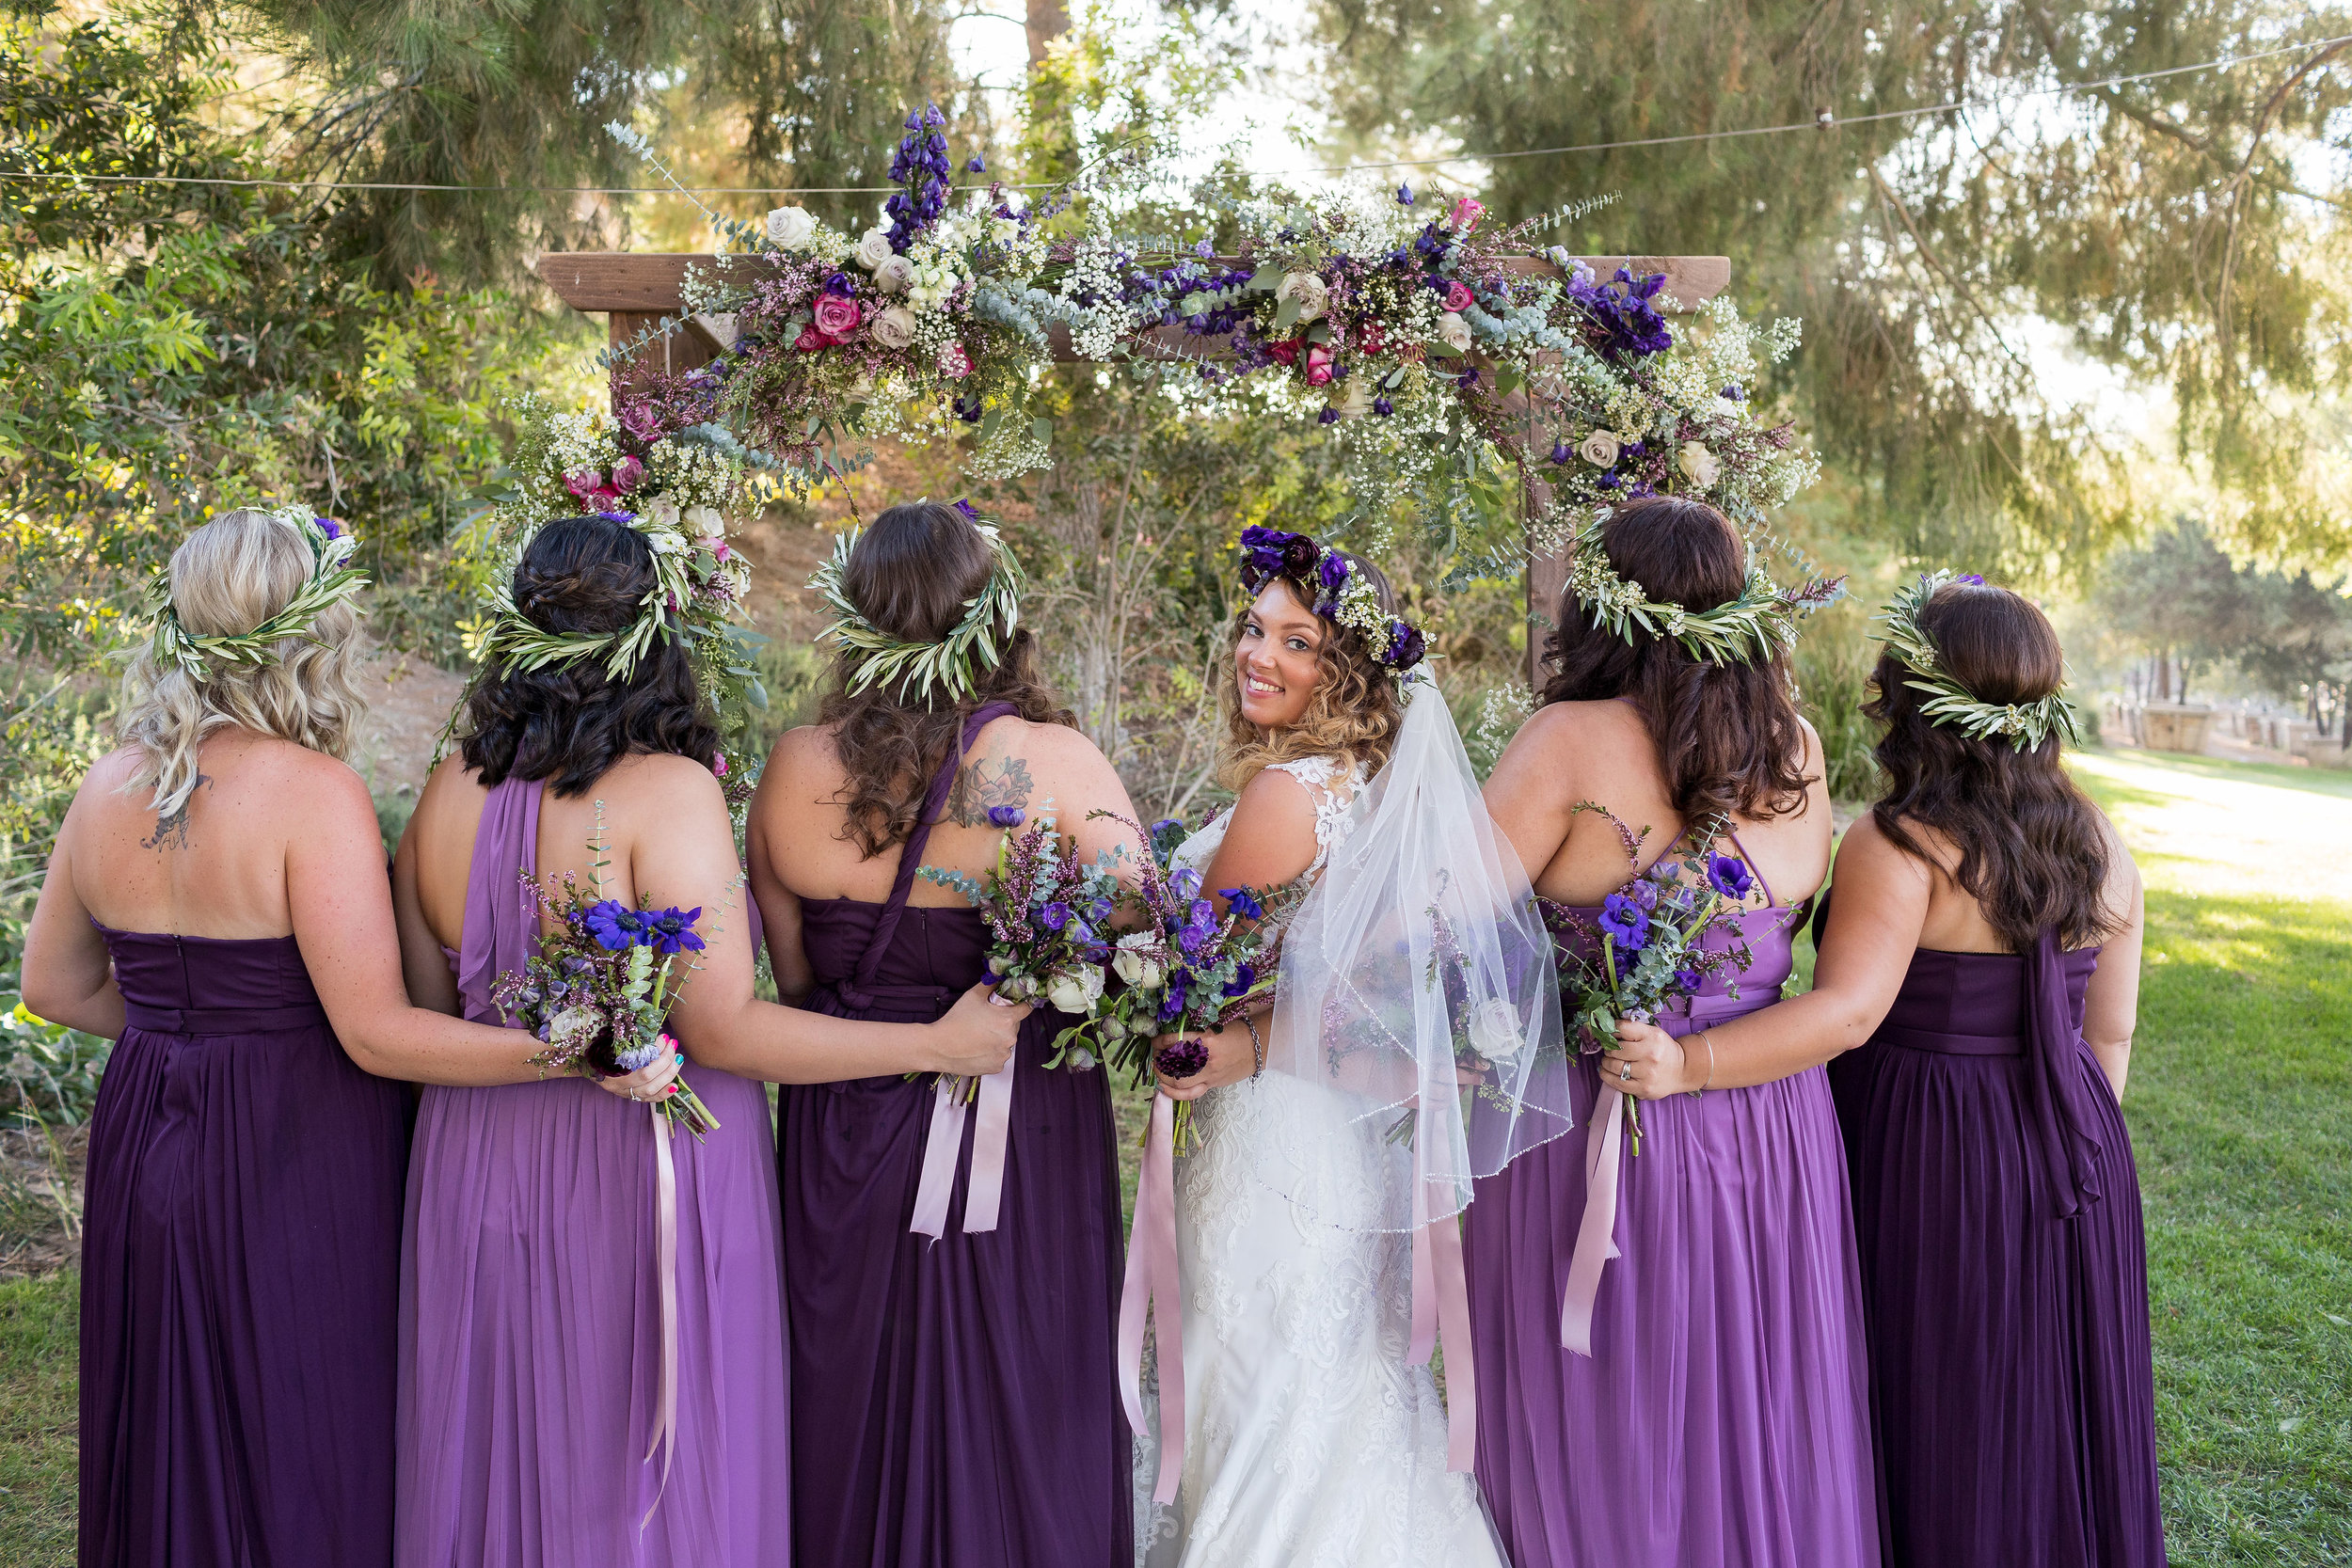 Bride and Bridesmaids Portraits LA Photographer.jpg